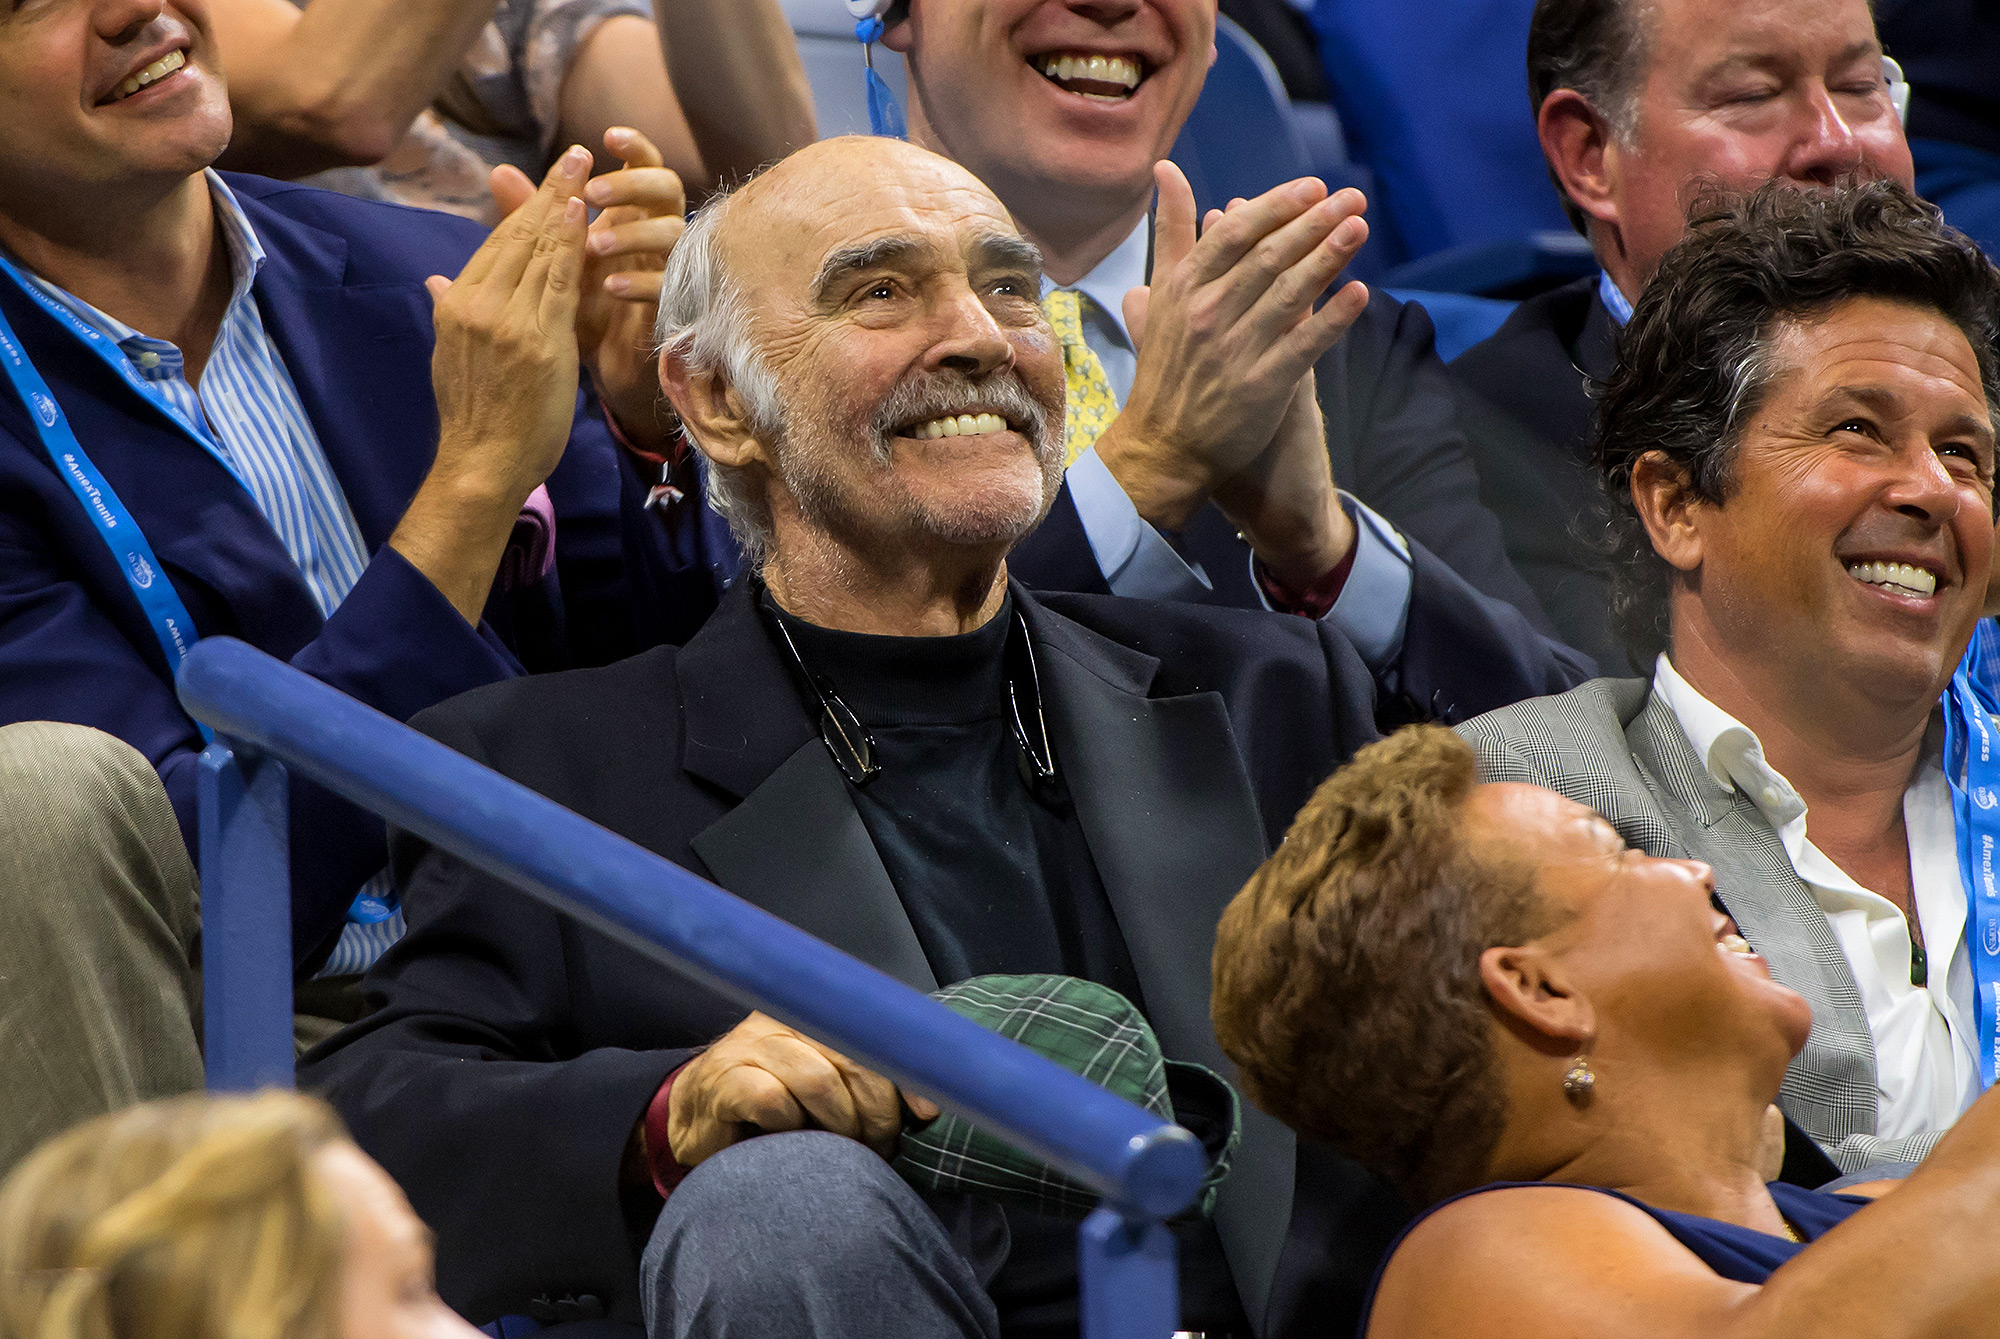 Actor Sean Connery Attends the 2017 US Open Tennis Championships